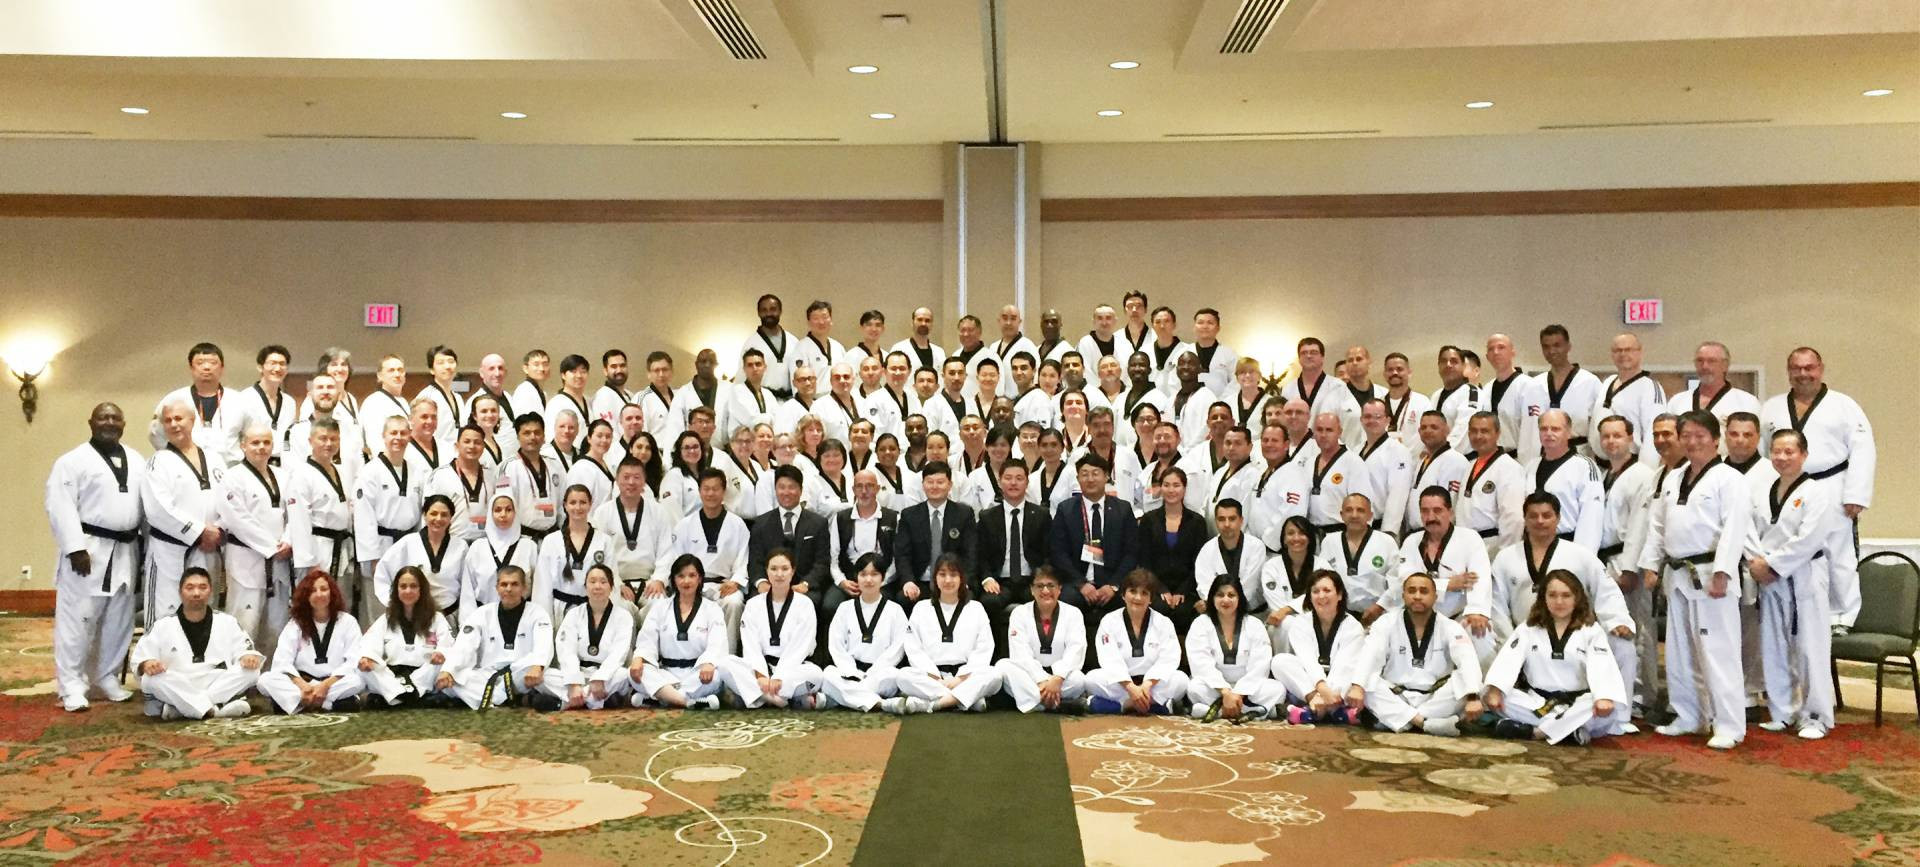 Taekwondo Canada hosts referee seminar in Burnaby